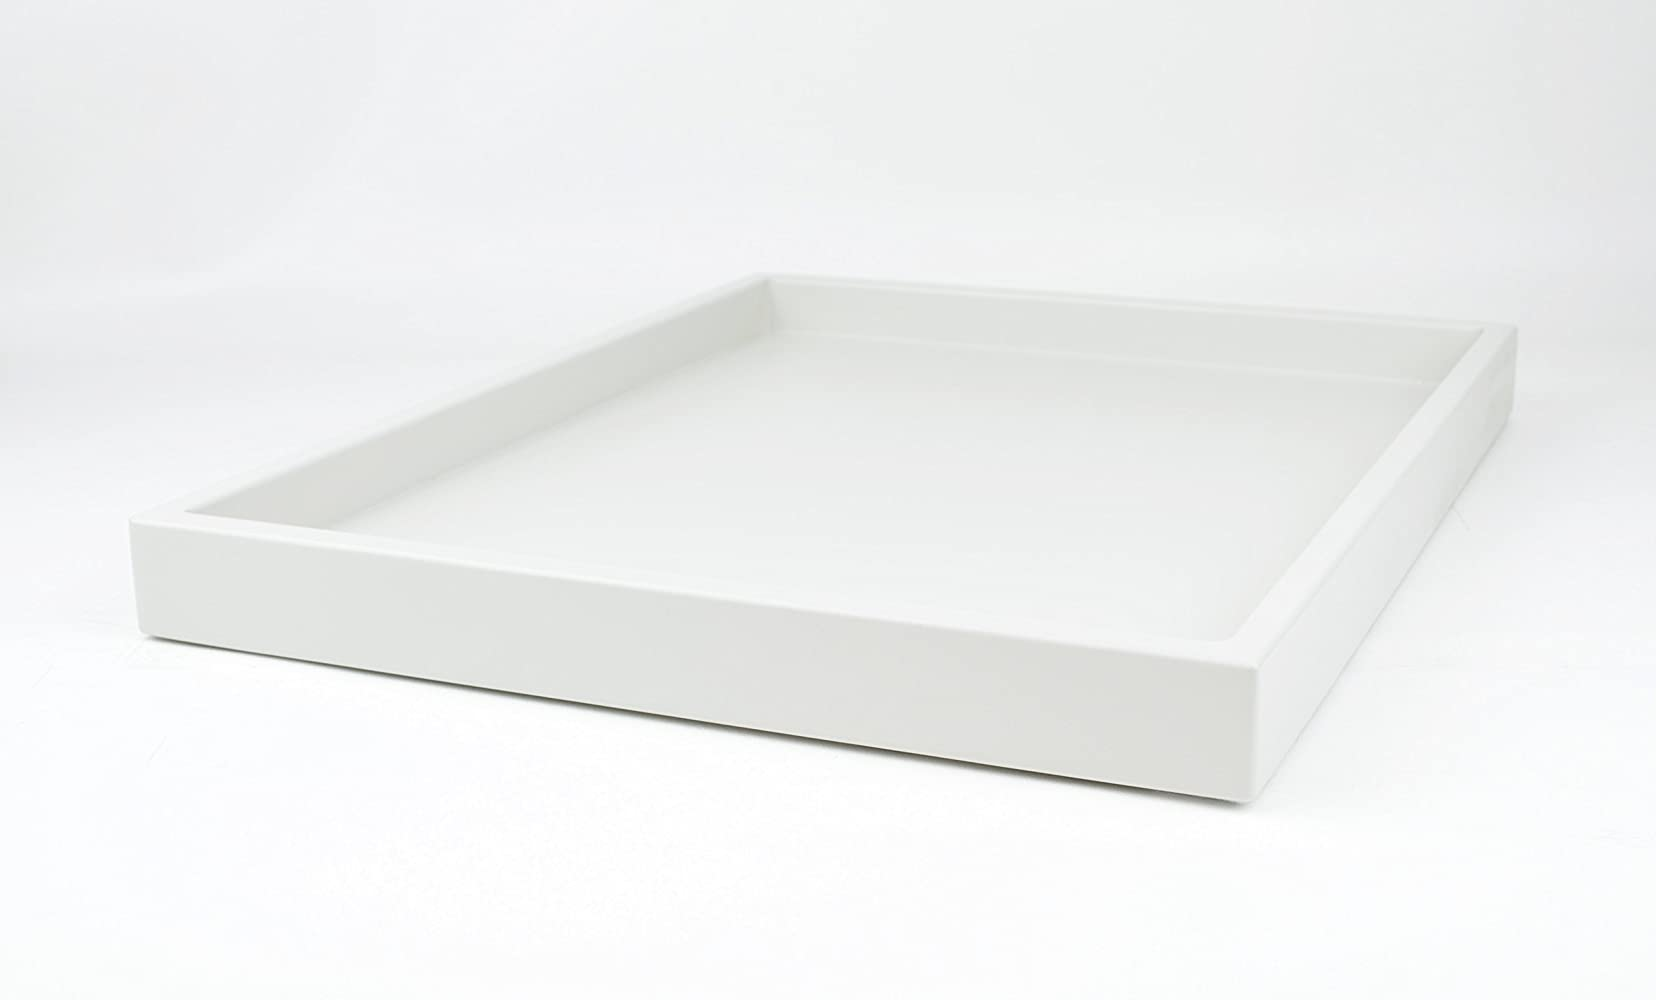 Decorative Minimalist Tray White Matte Lacquer 18 in. by 14 in. Shallow Low-profile Tray